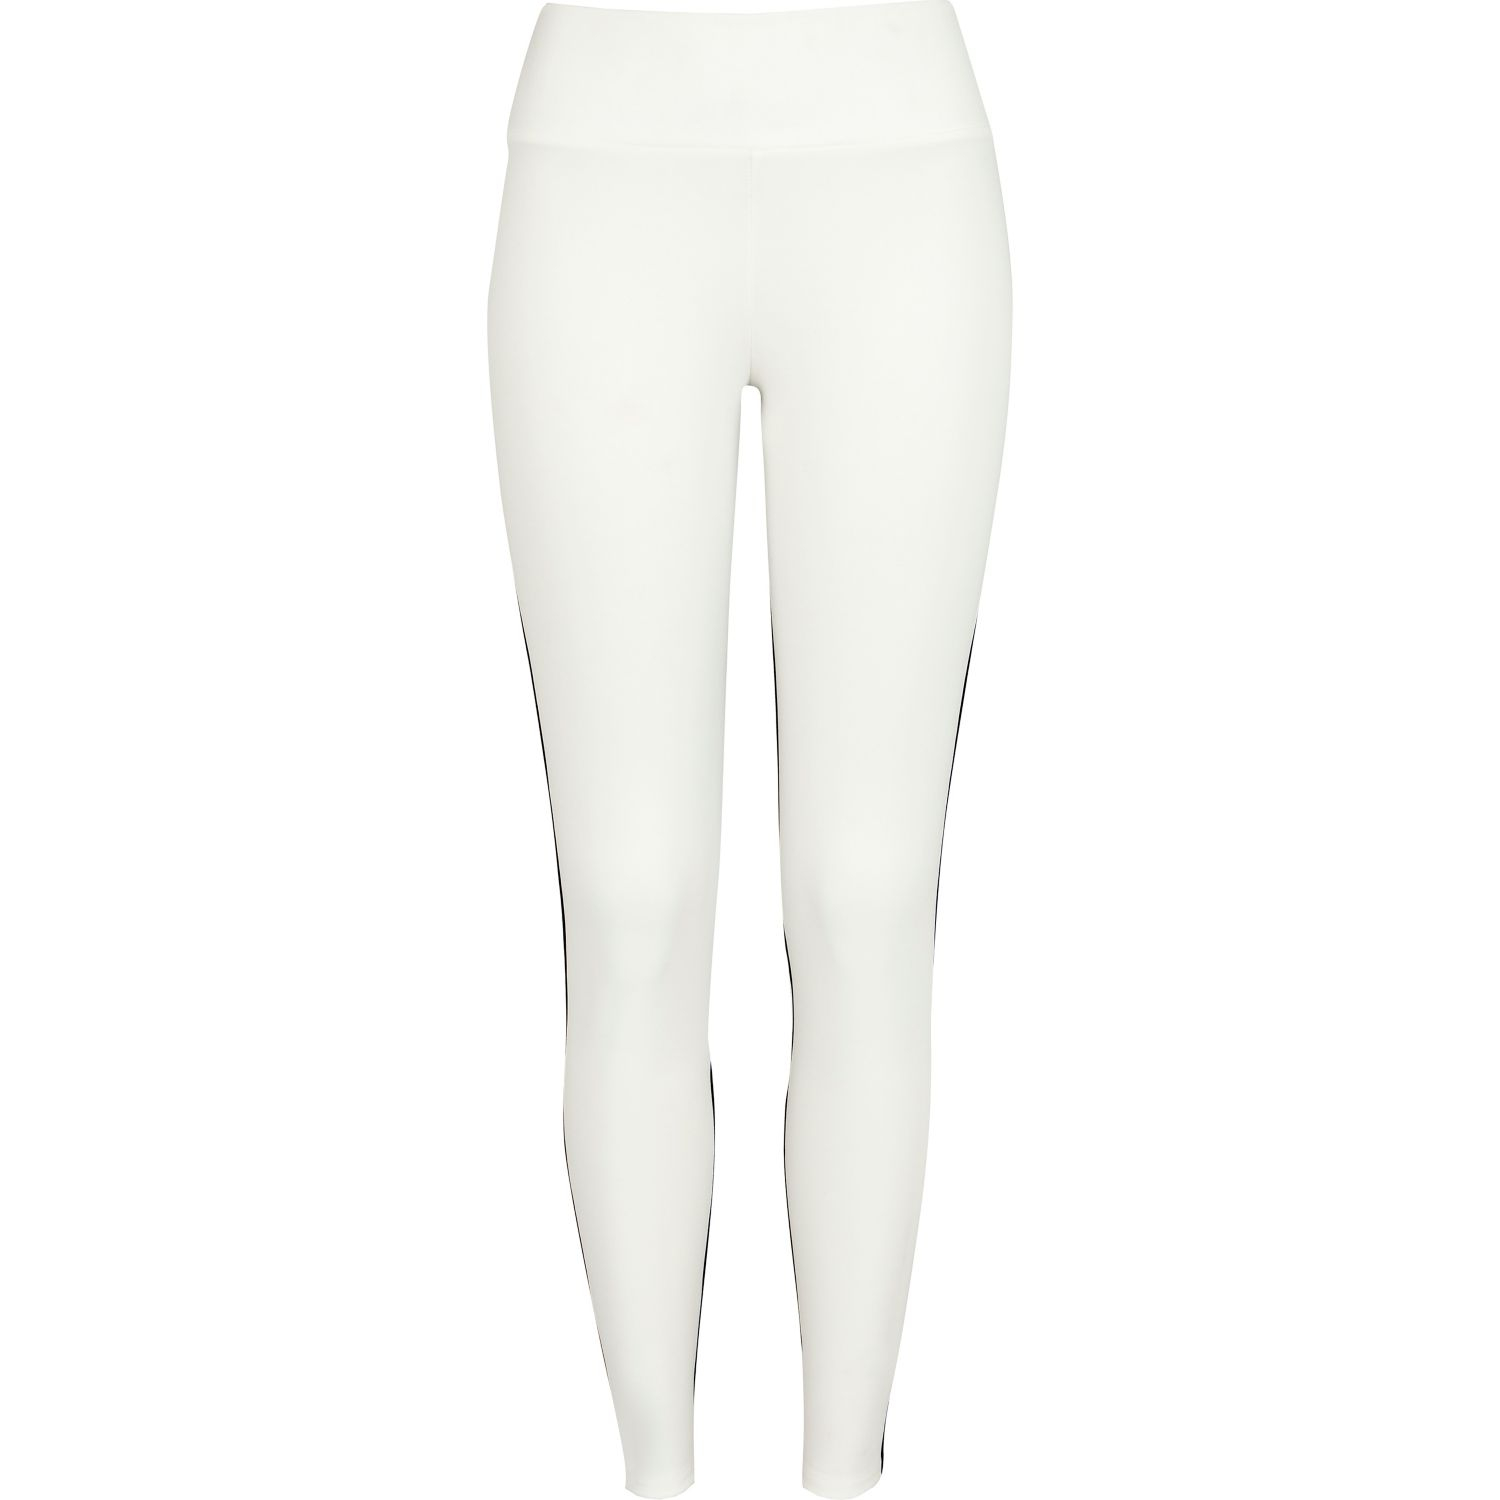 51ab7c3011bc61 River Island Black and White Color Block Leggings in White - Lyst